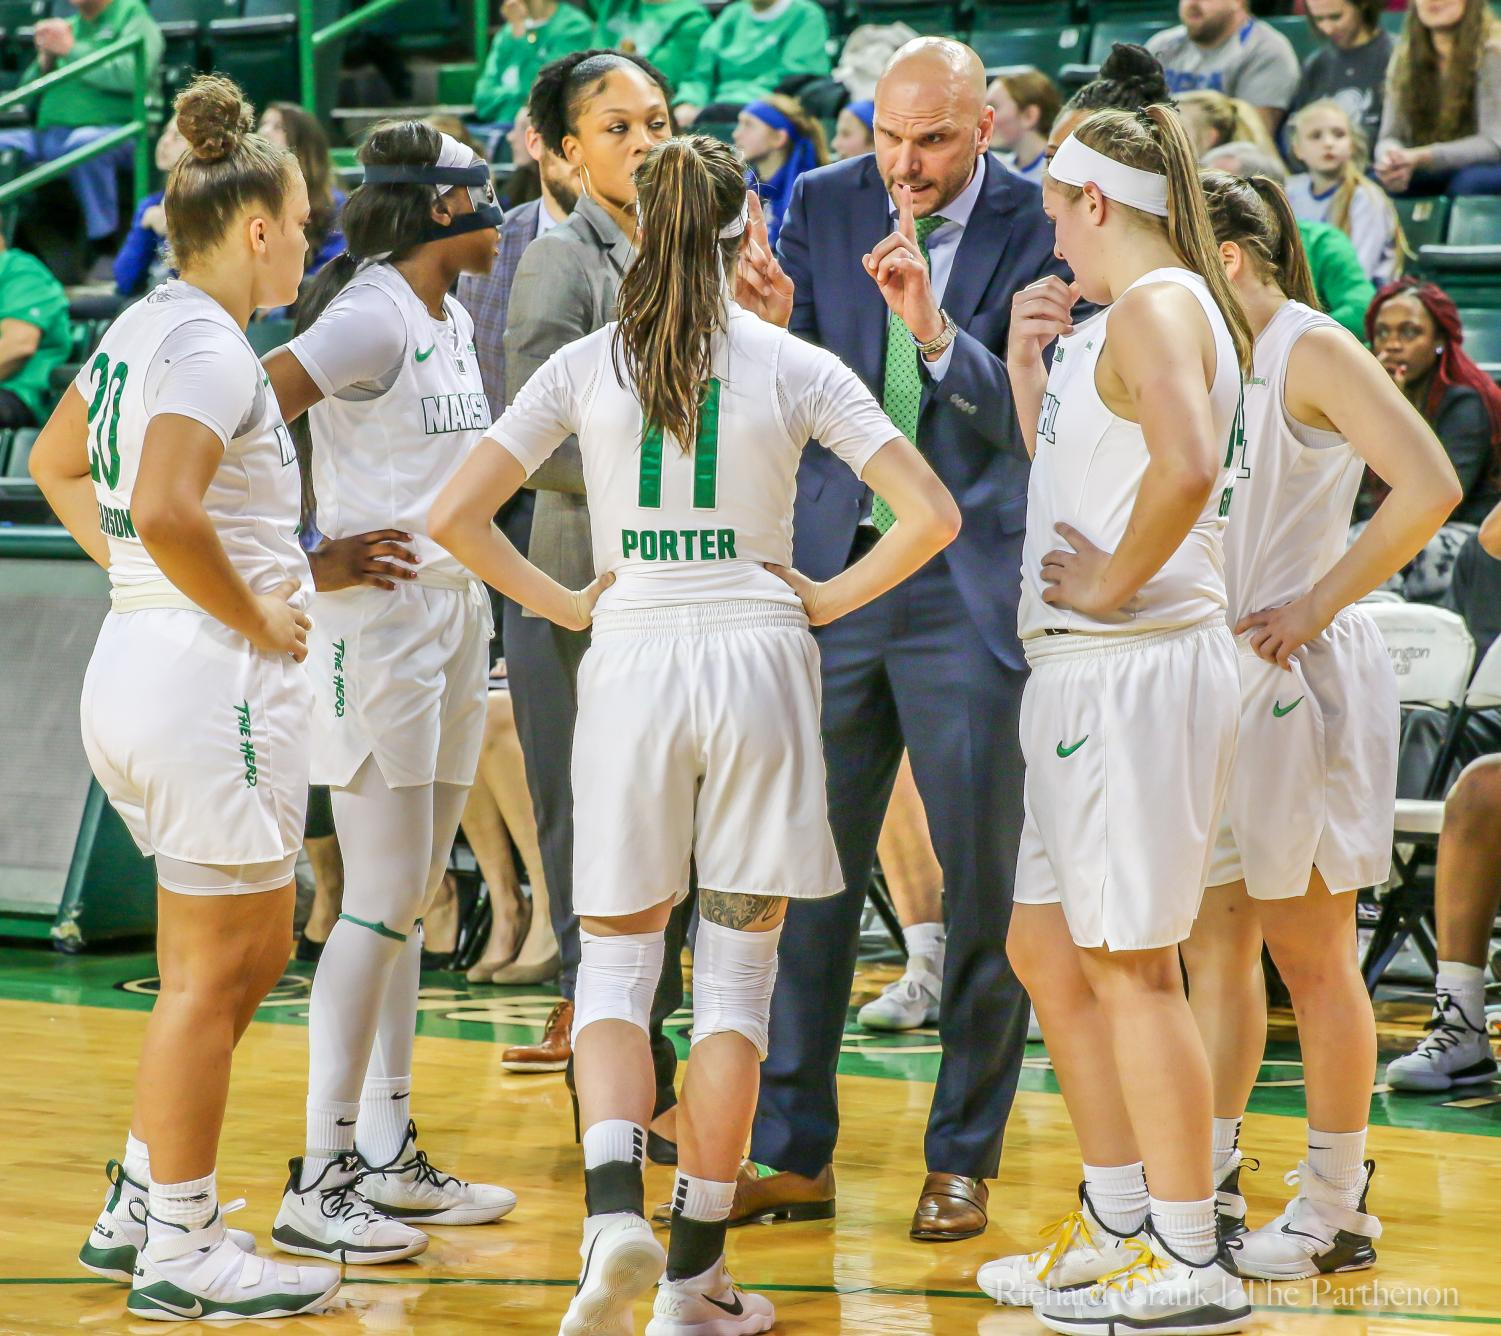 Tony Kemper coaches his team during a timeout in Marshall's C-USA game against LA Tech.